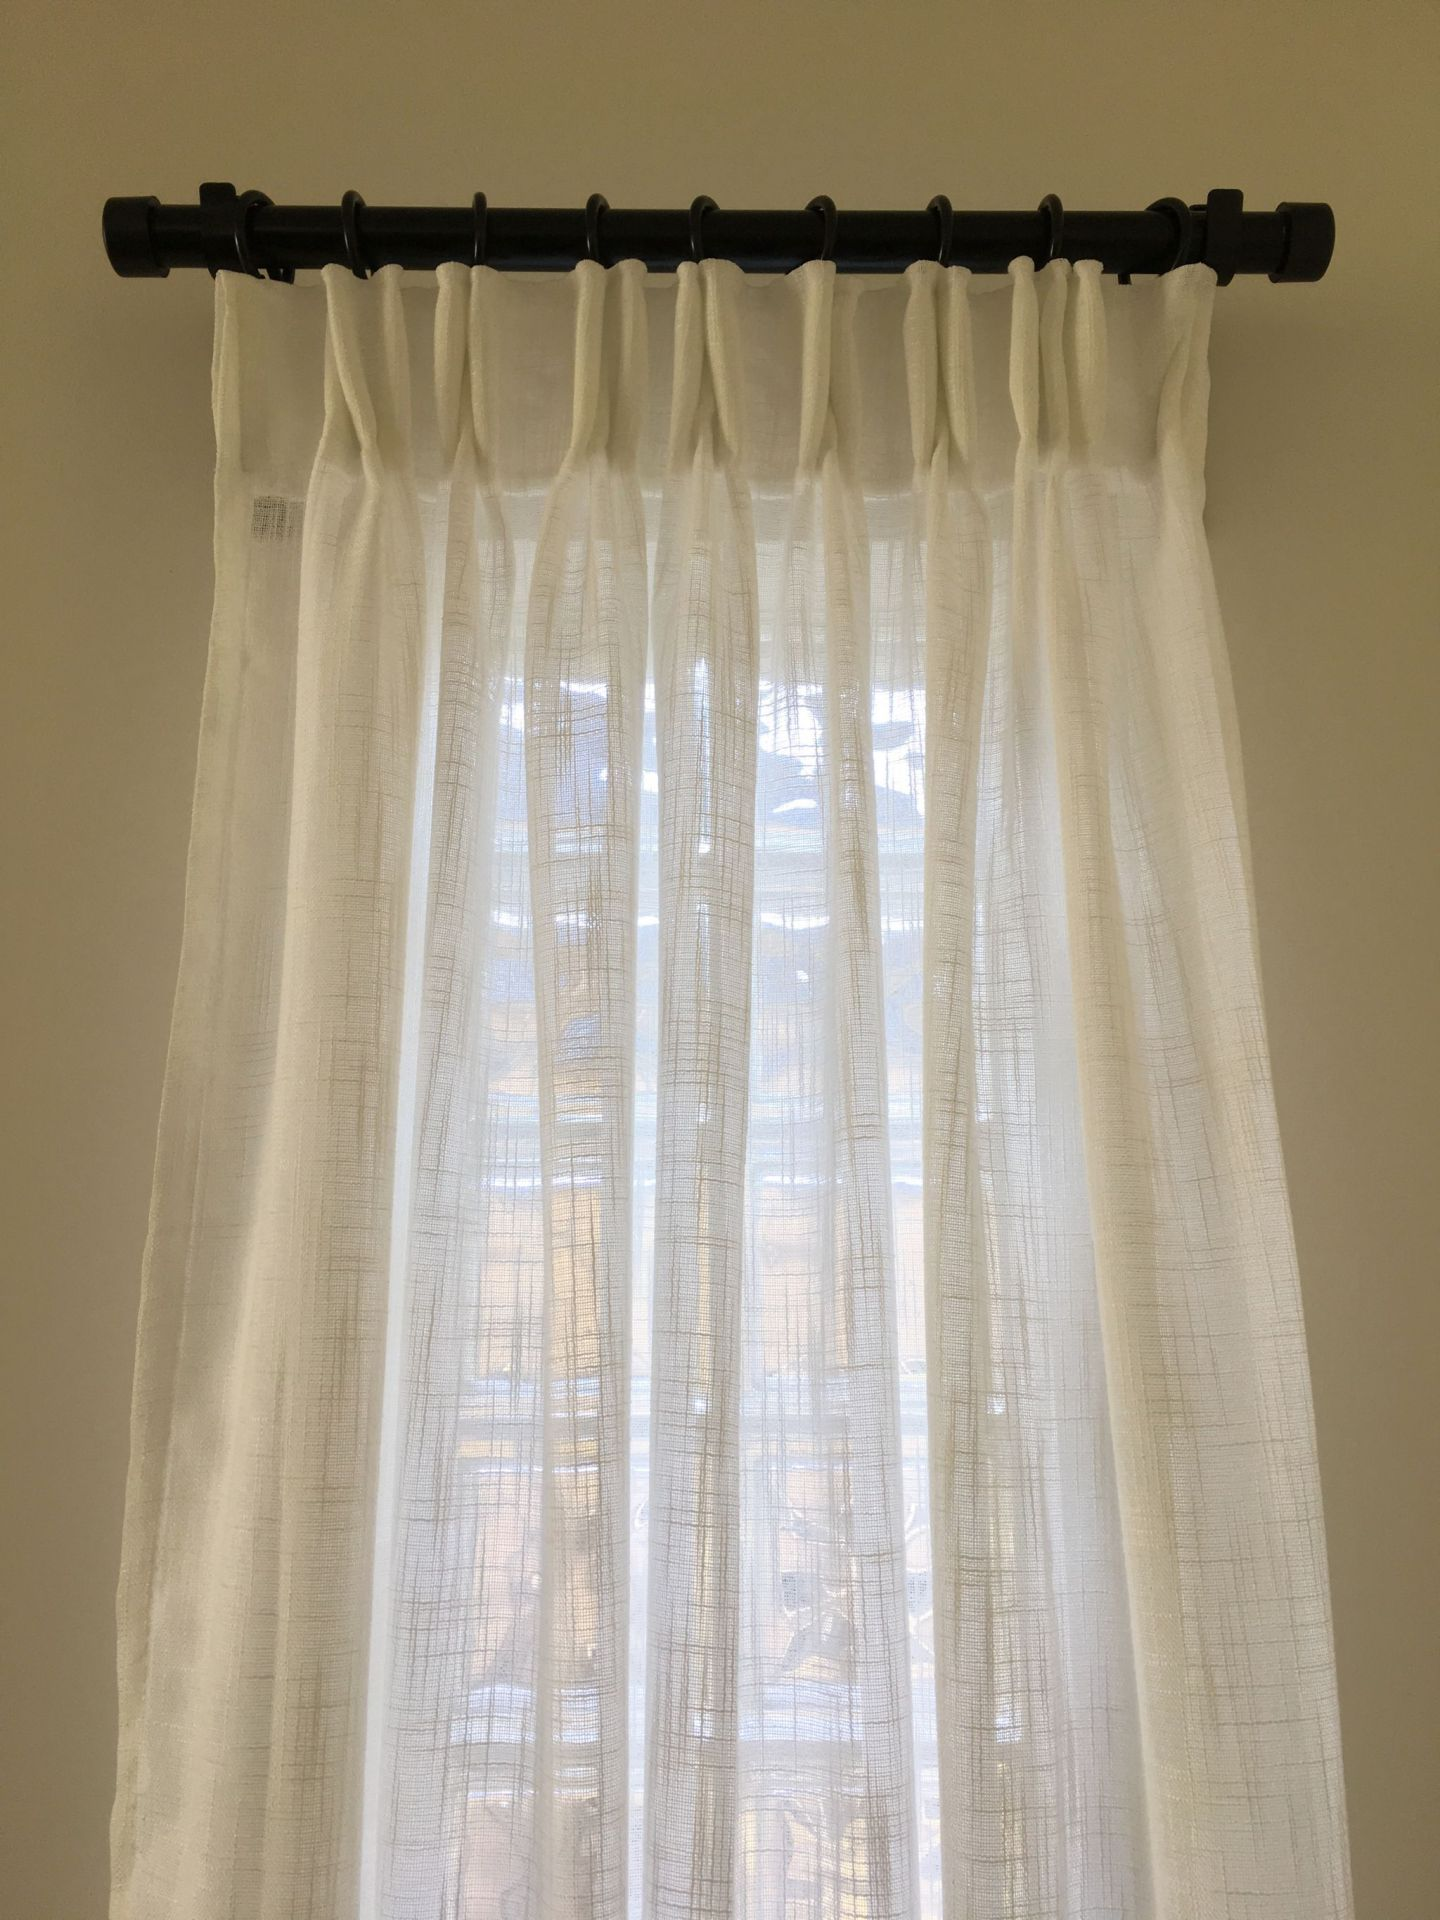 DIY: Easy Pinch Pleat Curtains - Life Is Better At Home